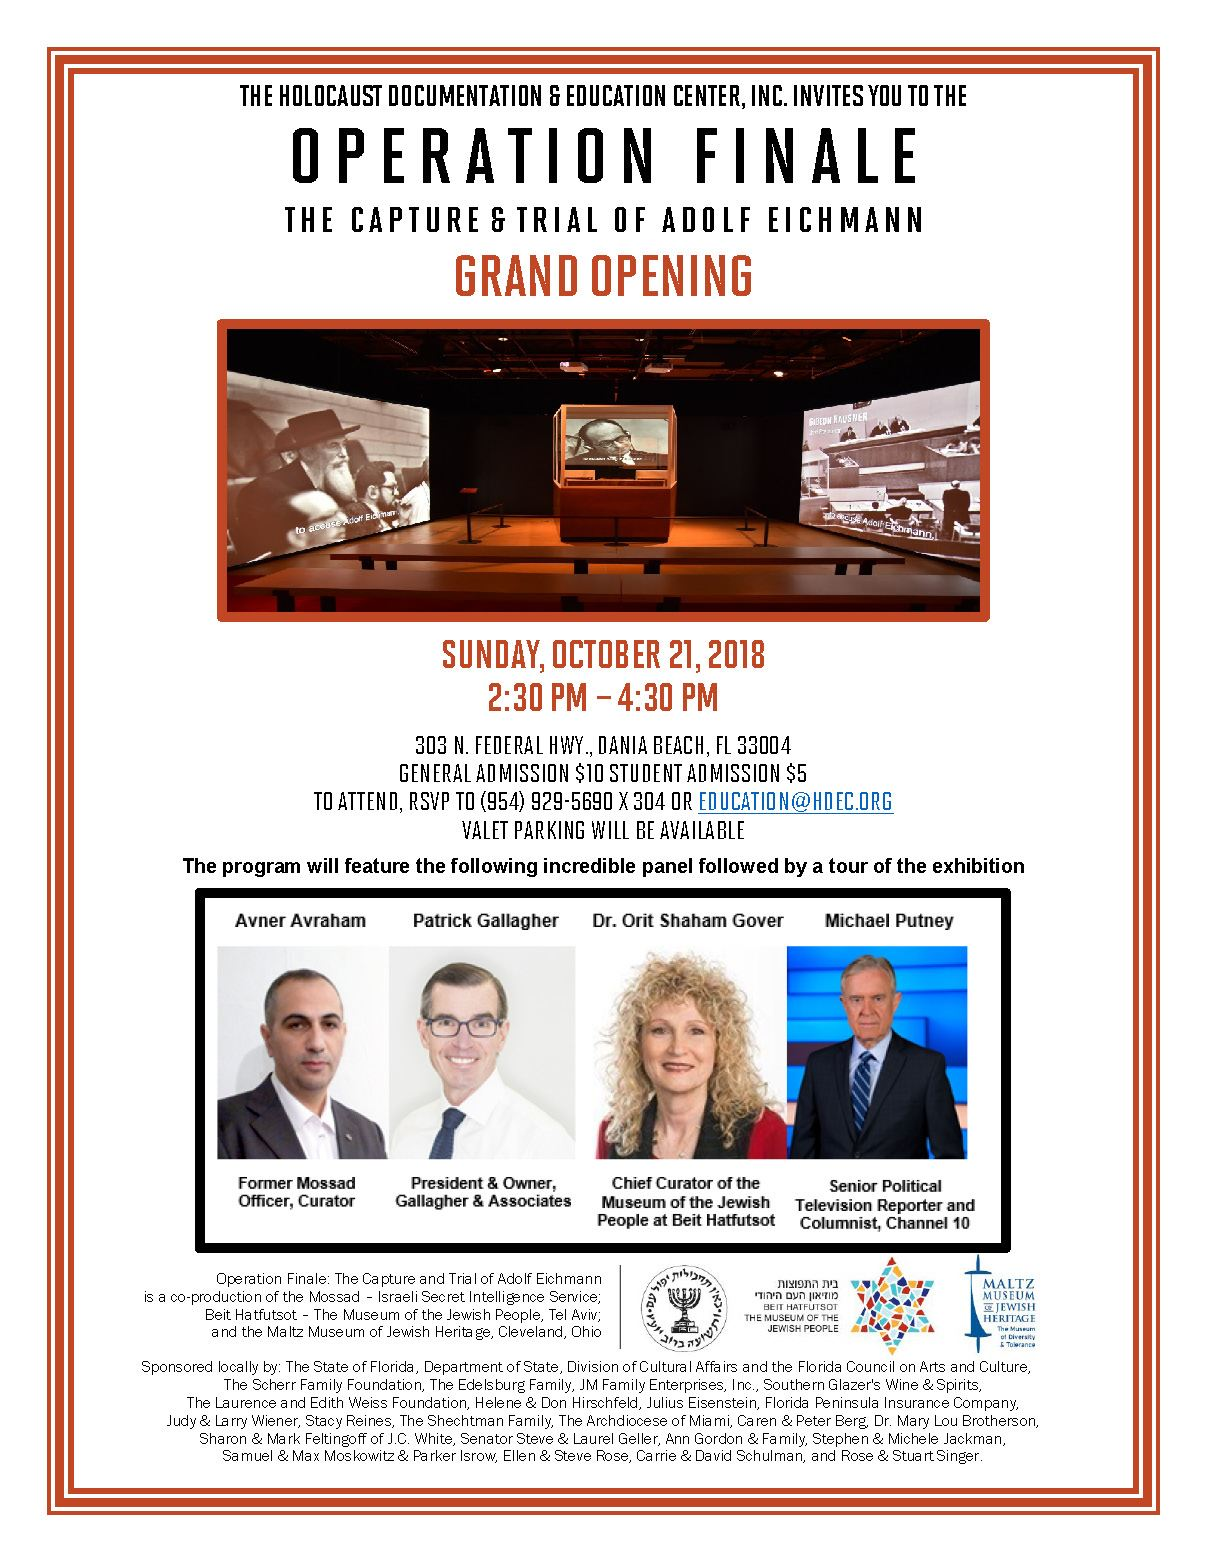 The Dania Beach Holocaust Documentation & Education Center Grand Opening Invite 09.06.18